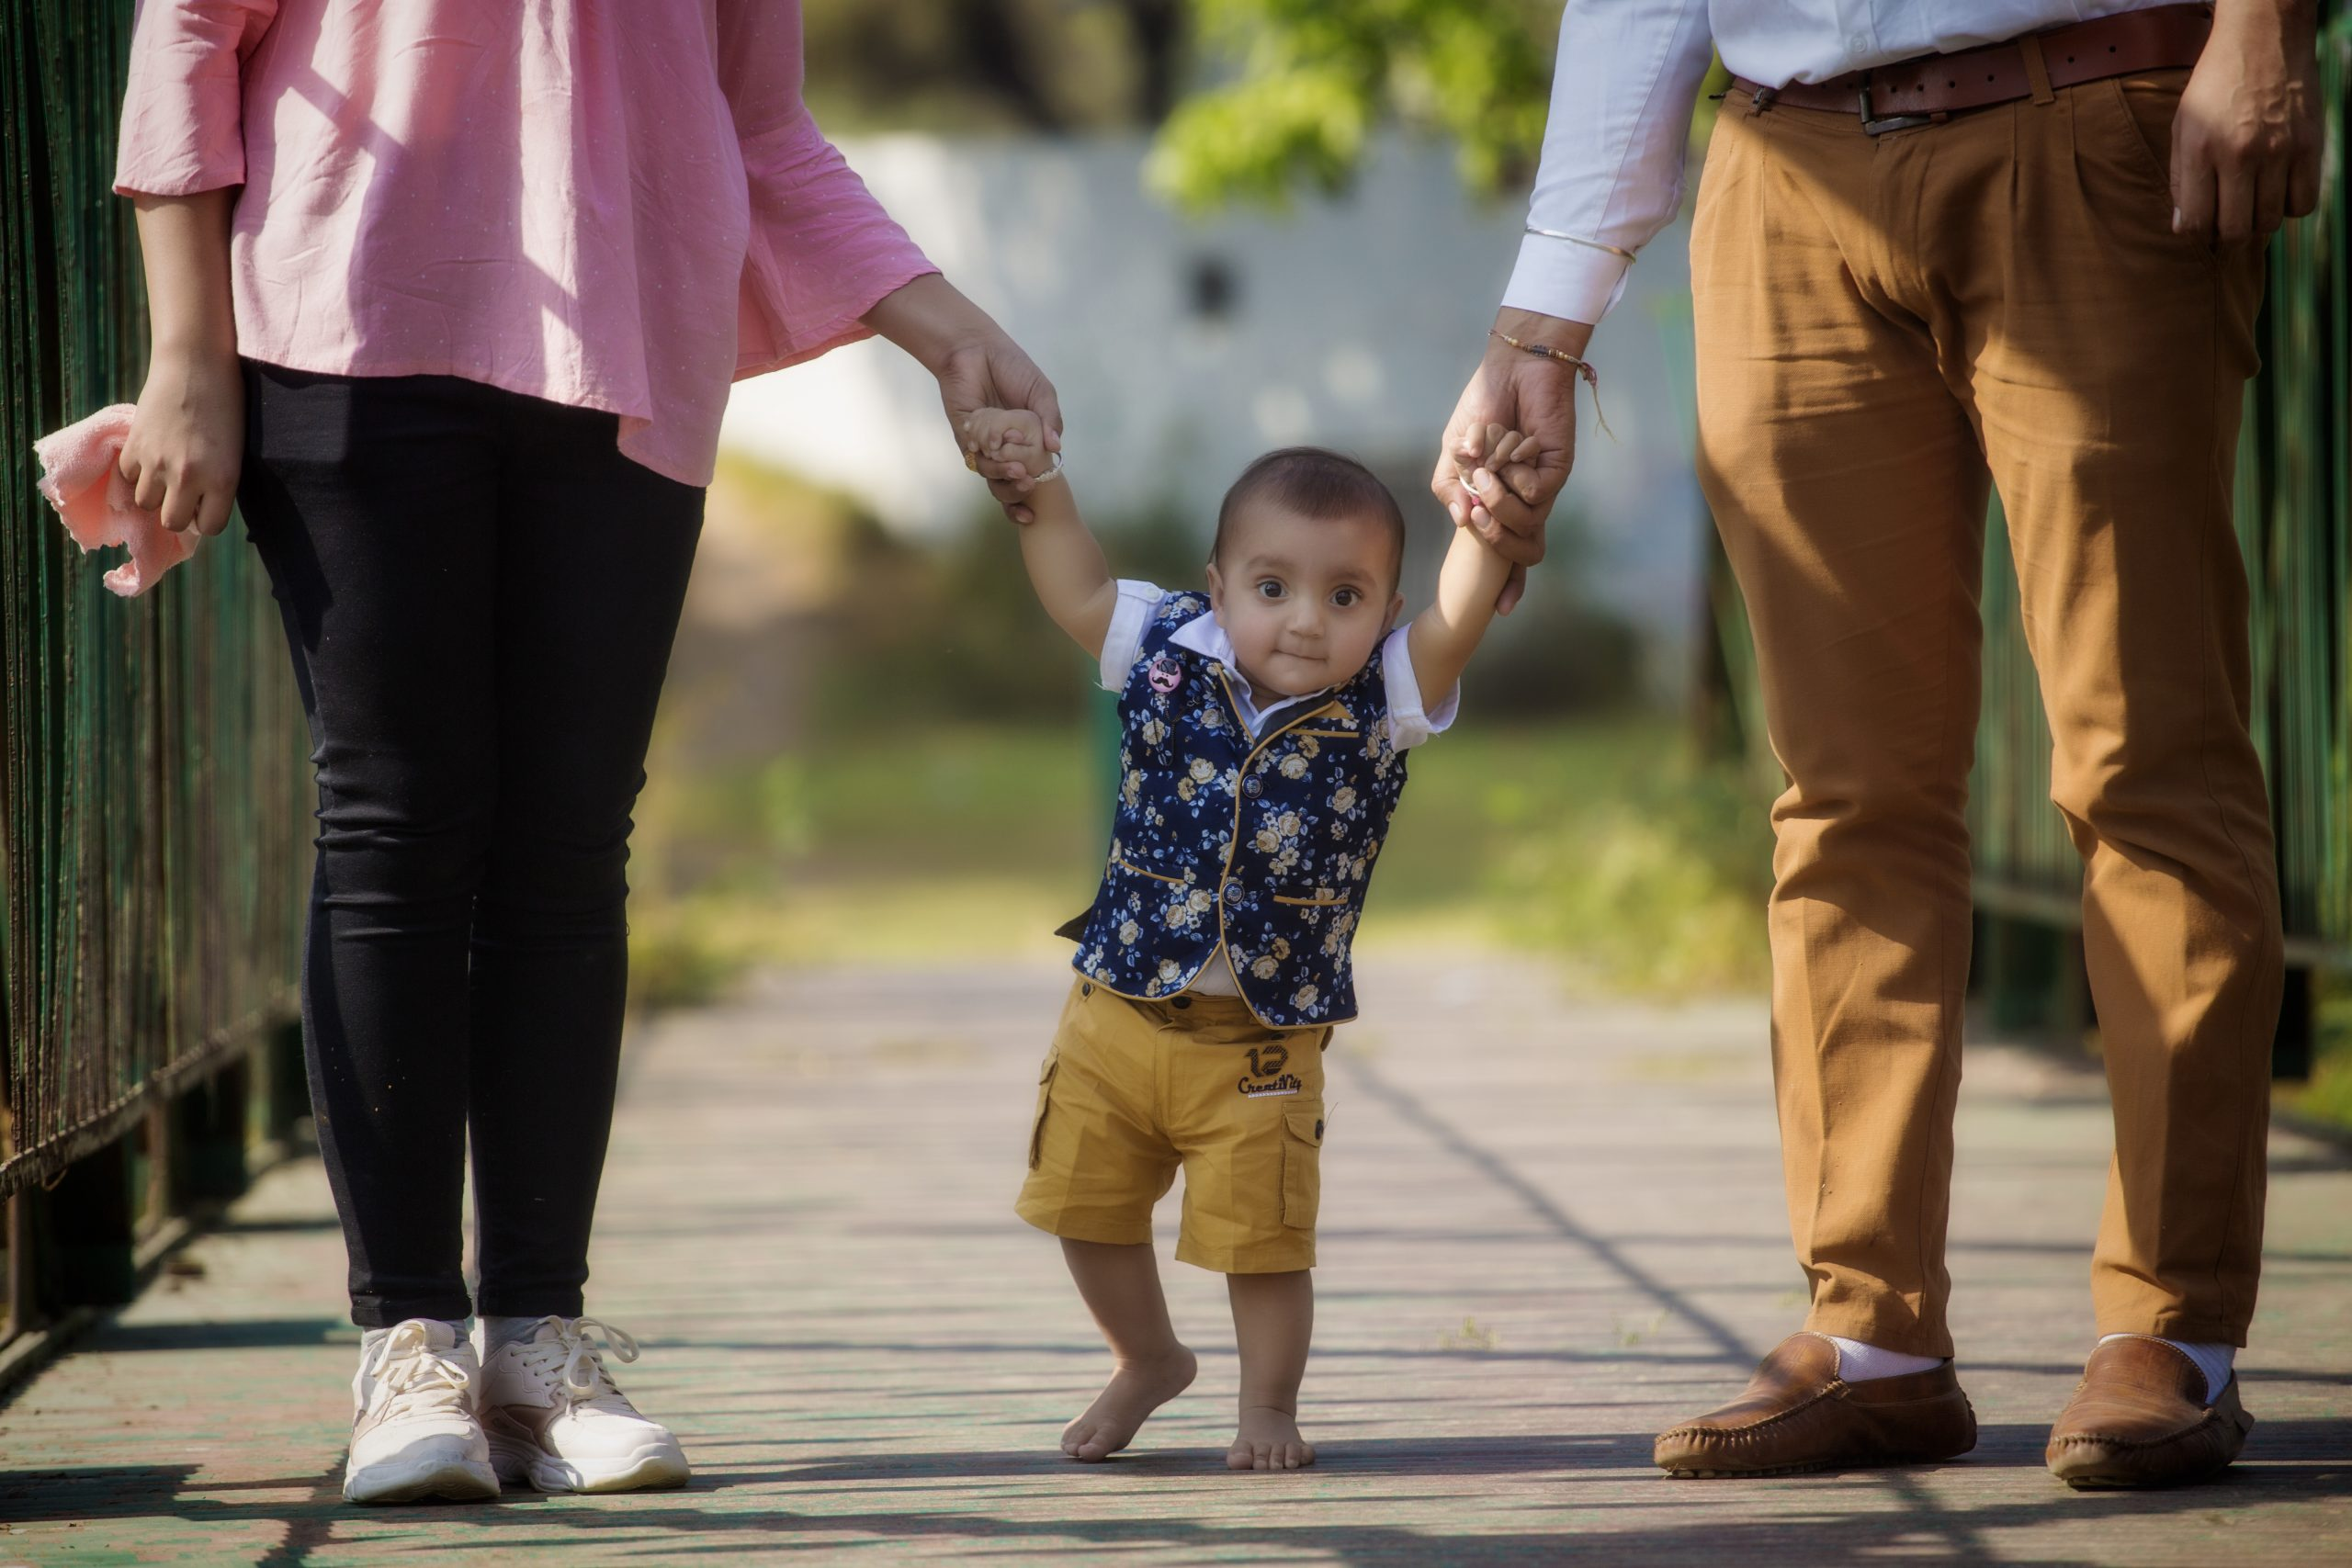 A little kid walking with parents